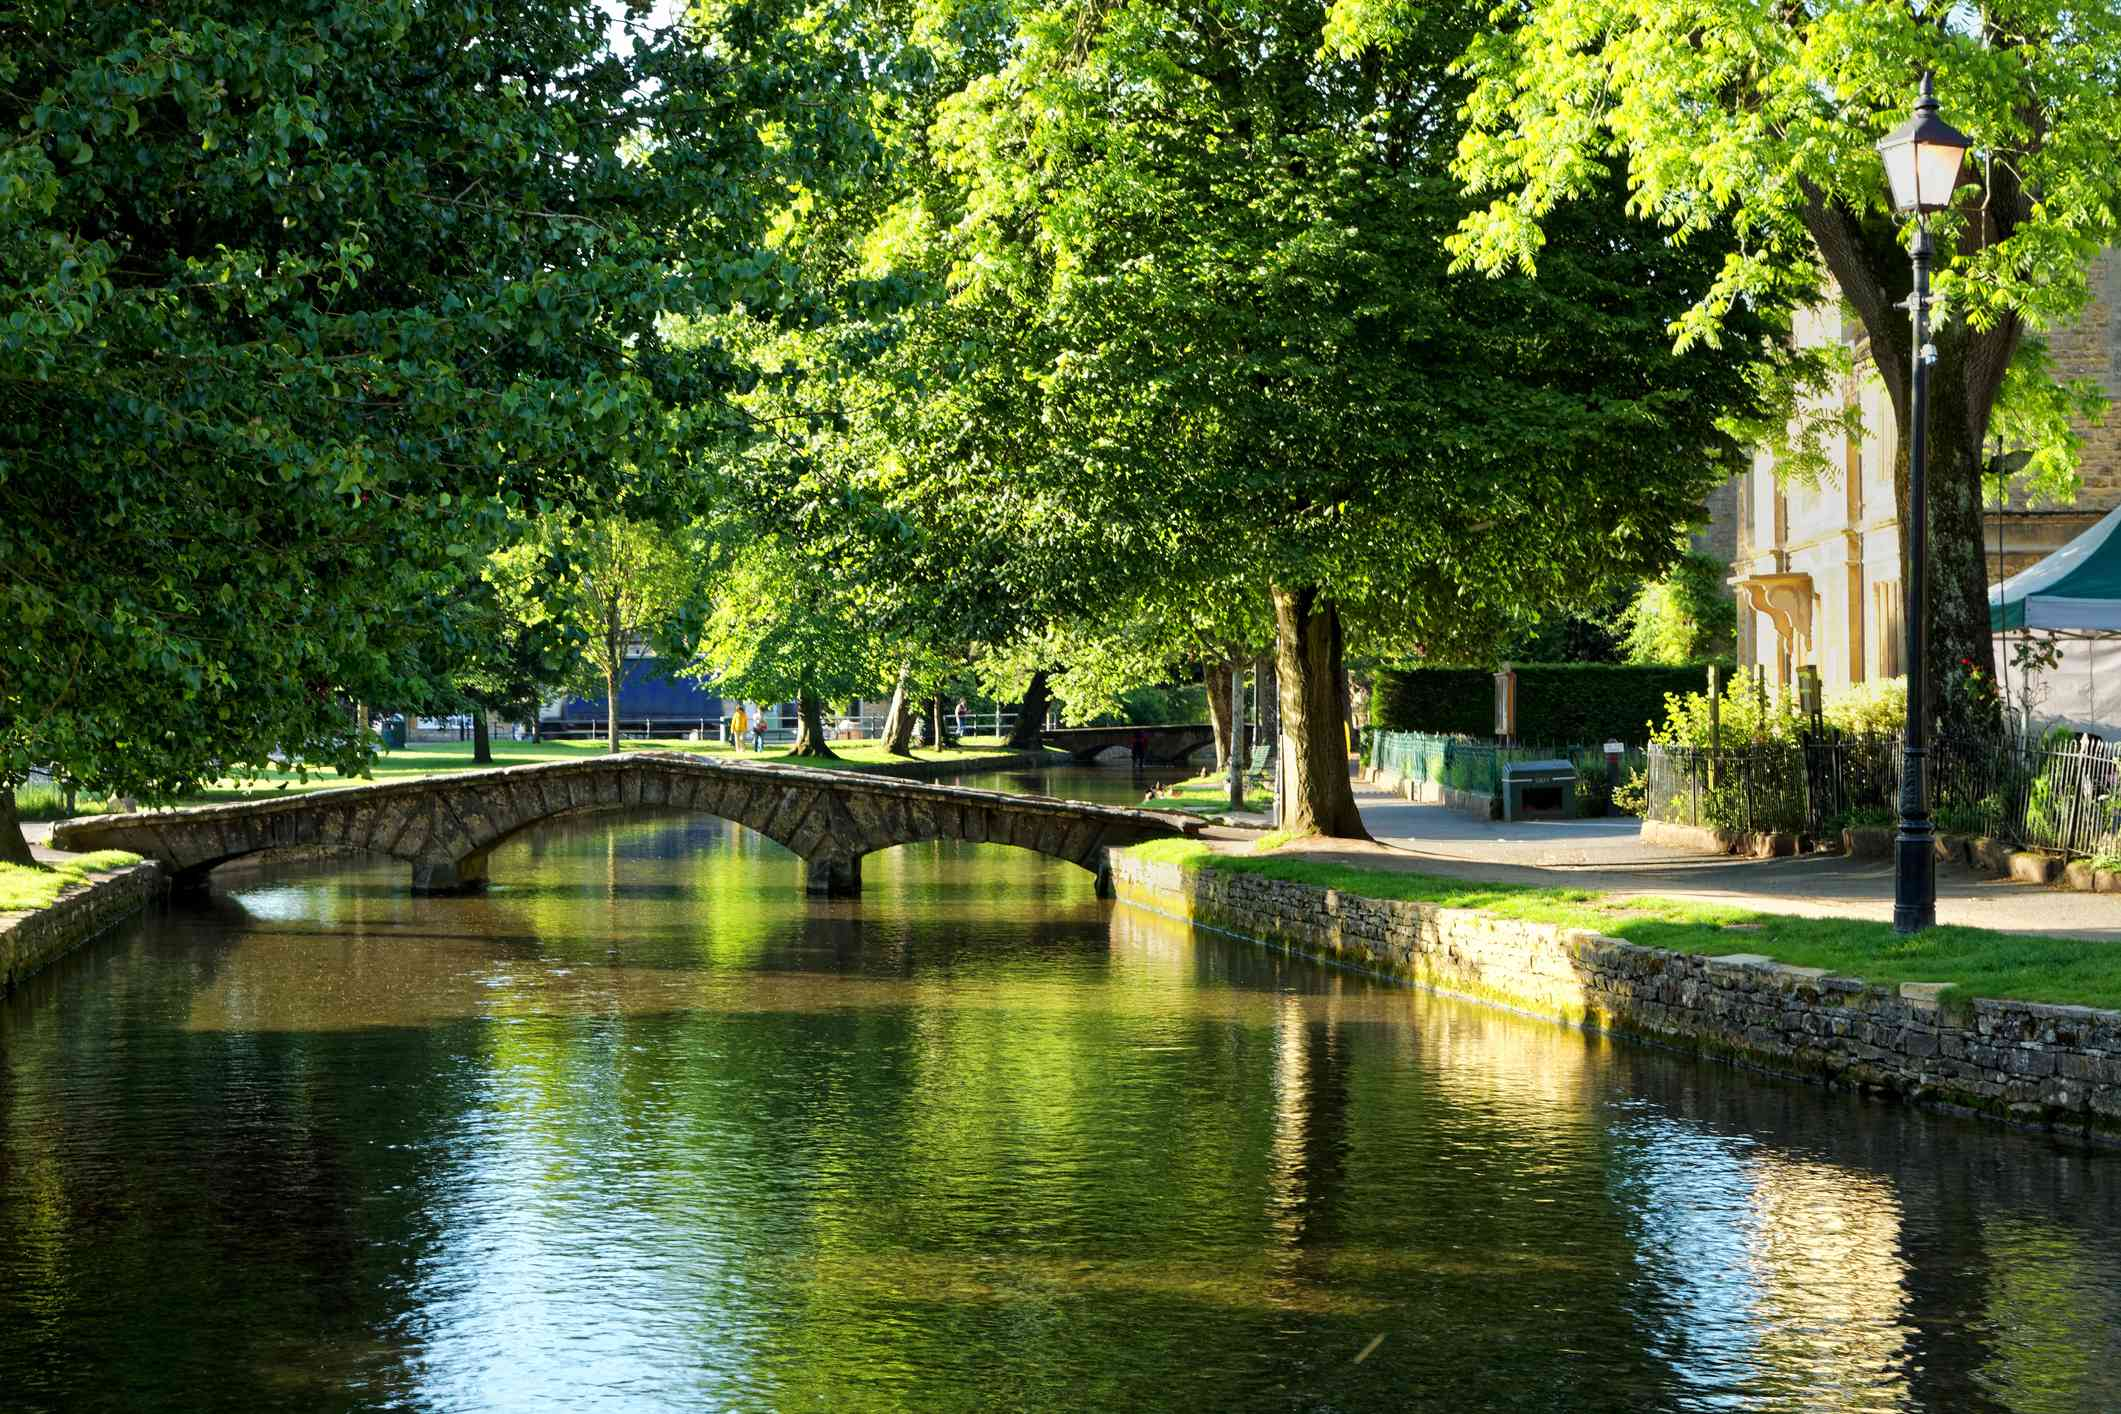 Windrush river in Bourton-on-the-Water in the Cotswolds, Gloucestershire, England